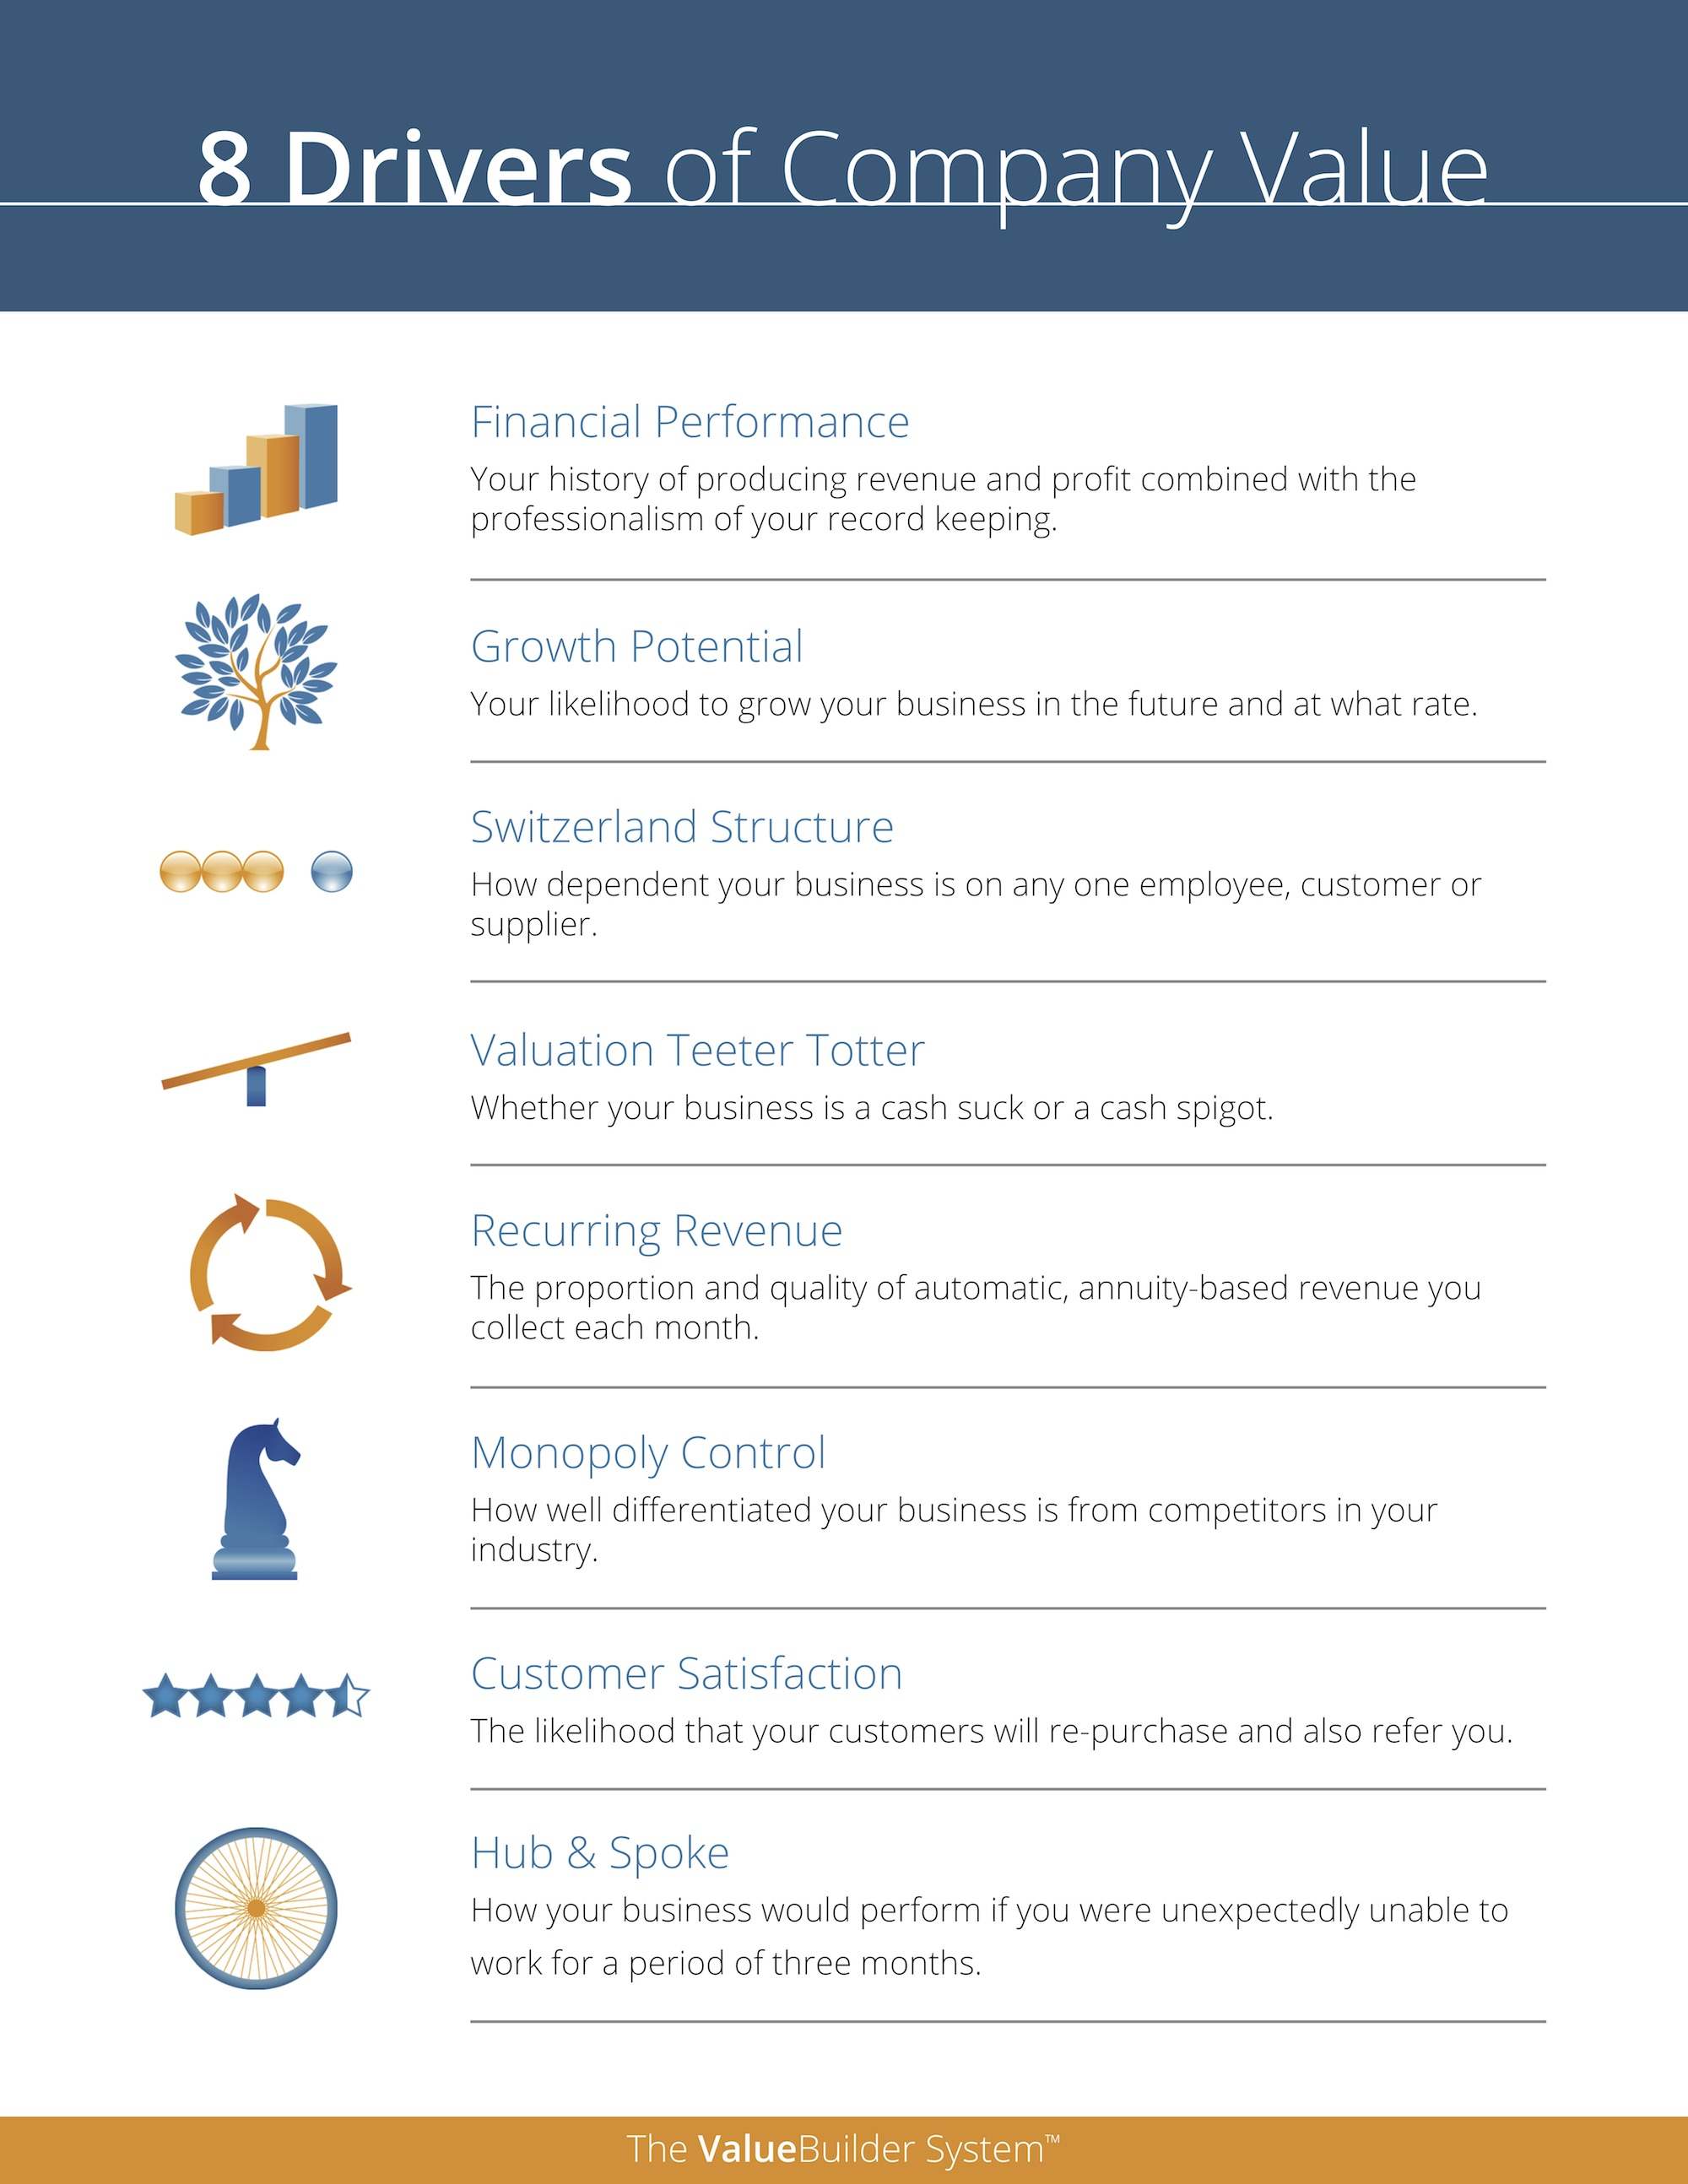 8 Drivers of Company Value